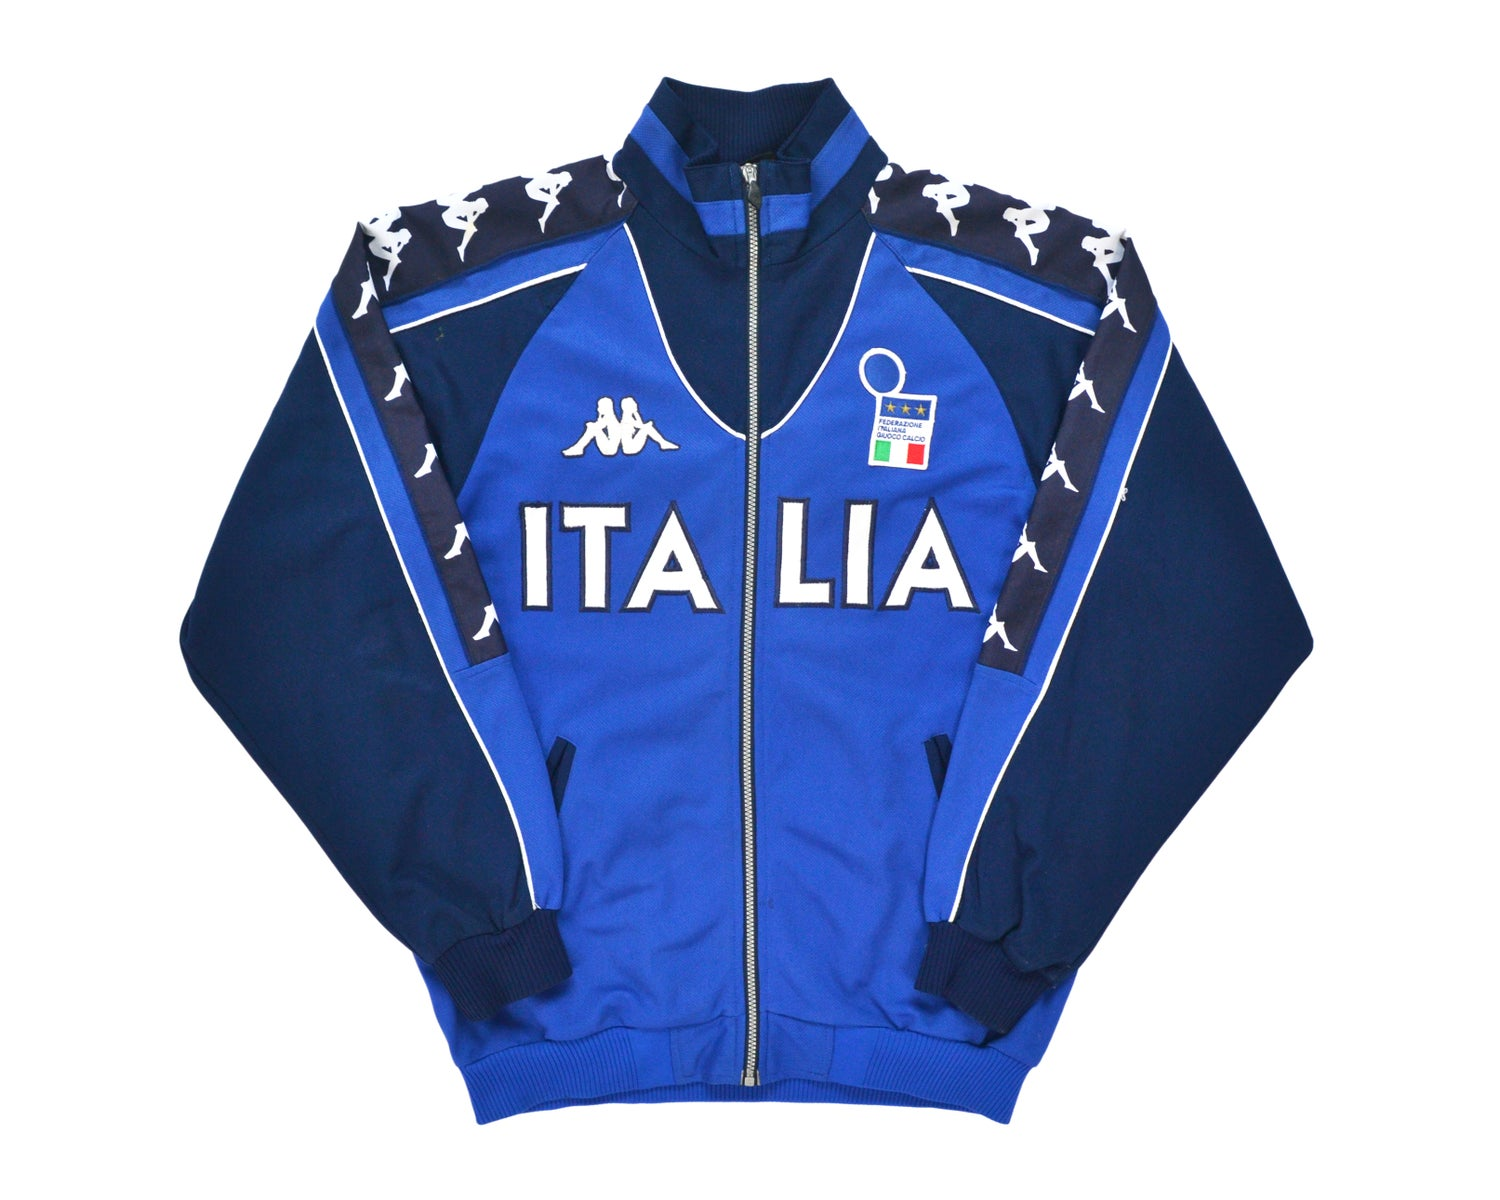 Image of 2000-01 Kappa Italy Track Top XL